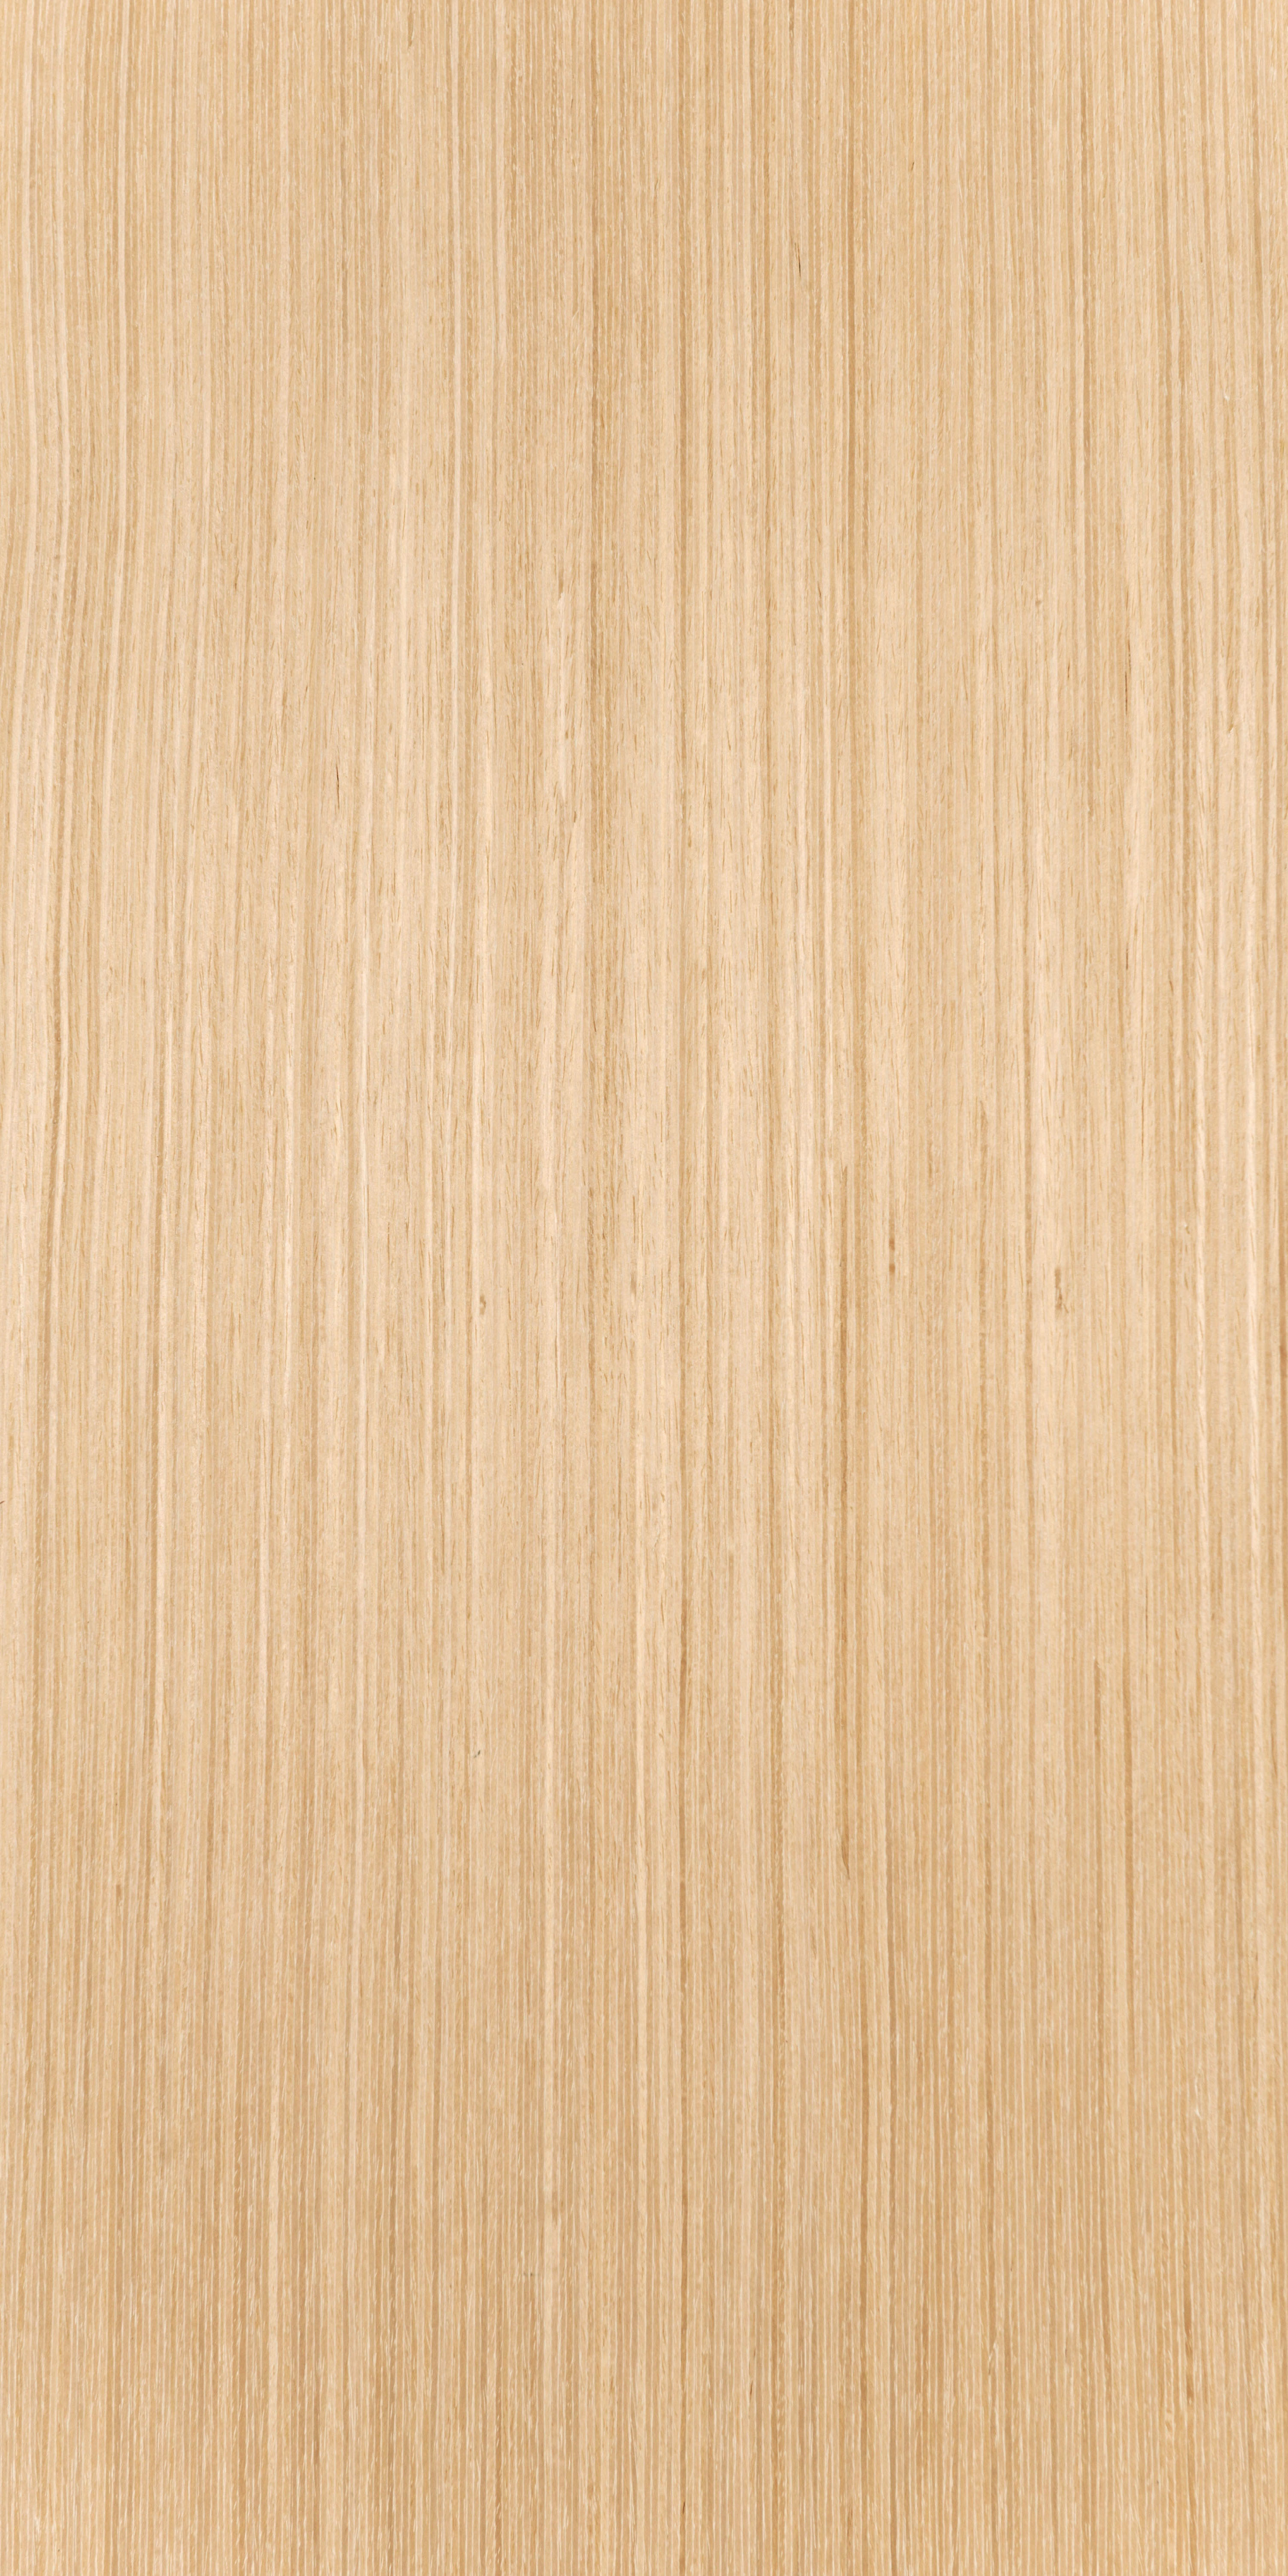 815 Recon Fancy White Oak Billiona Enterprise